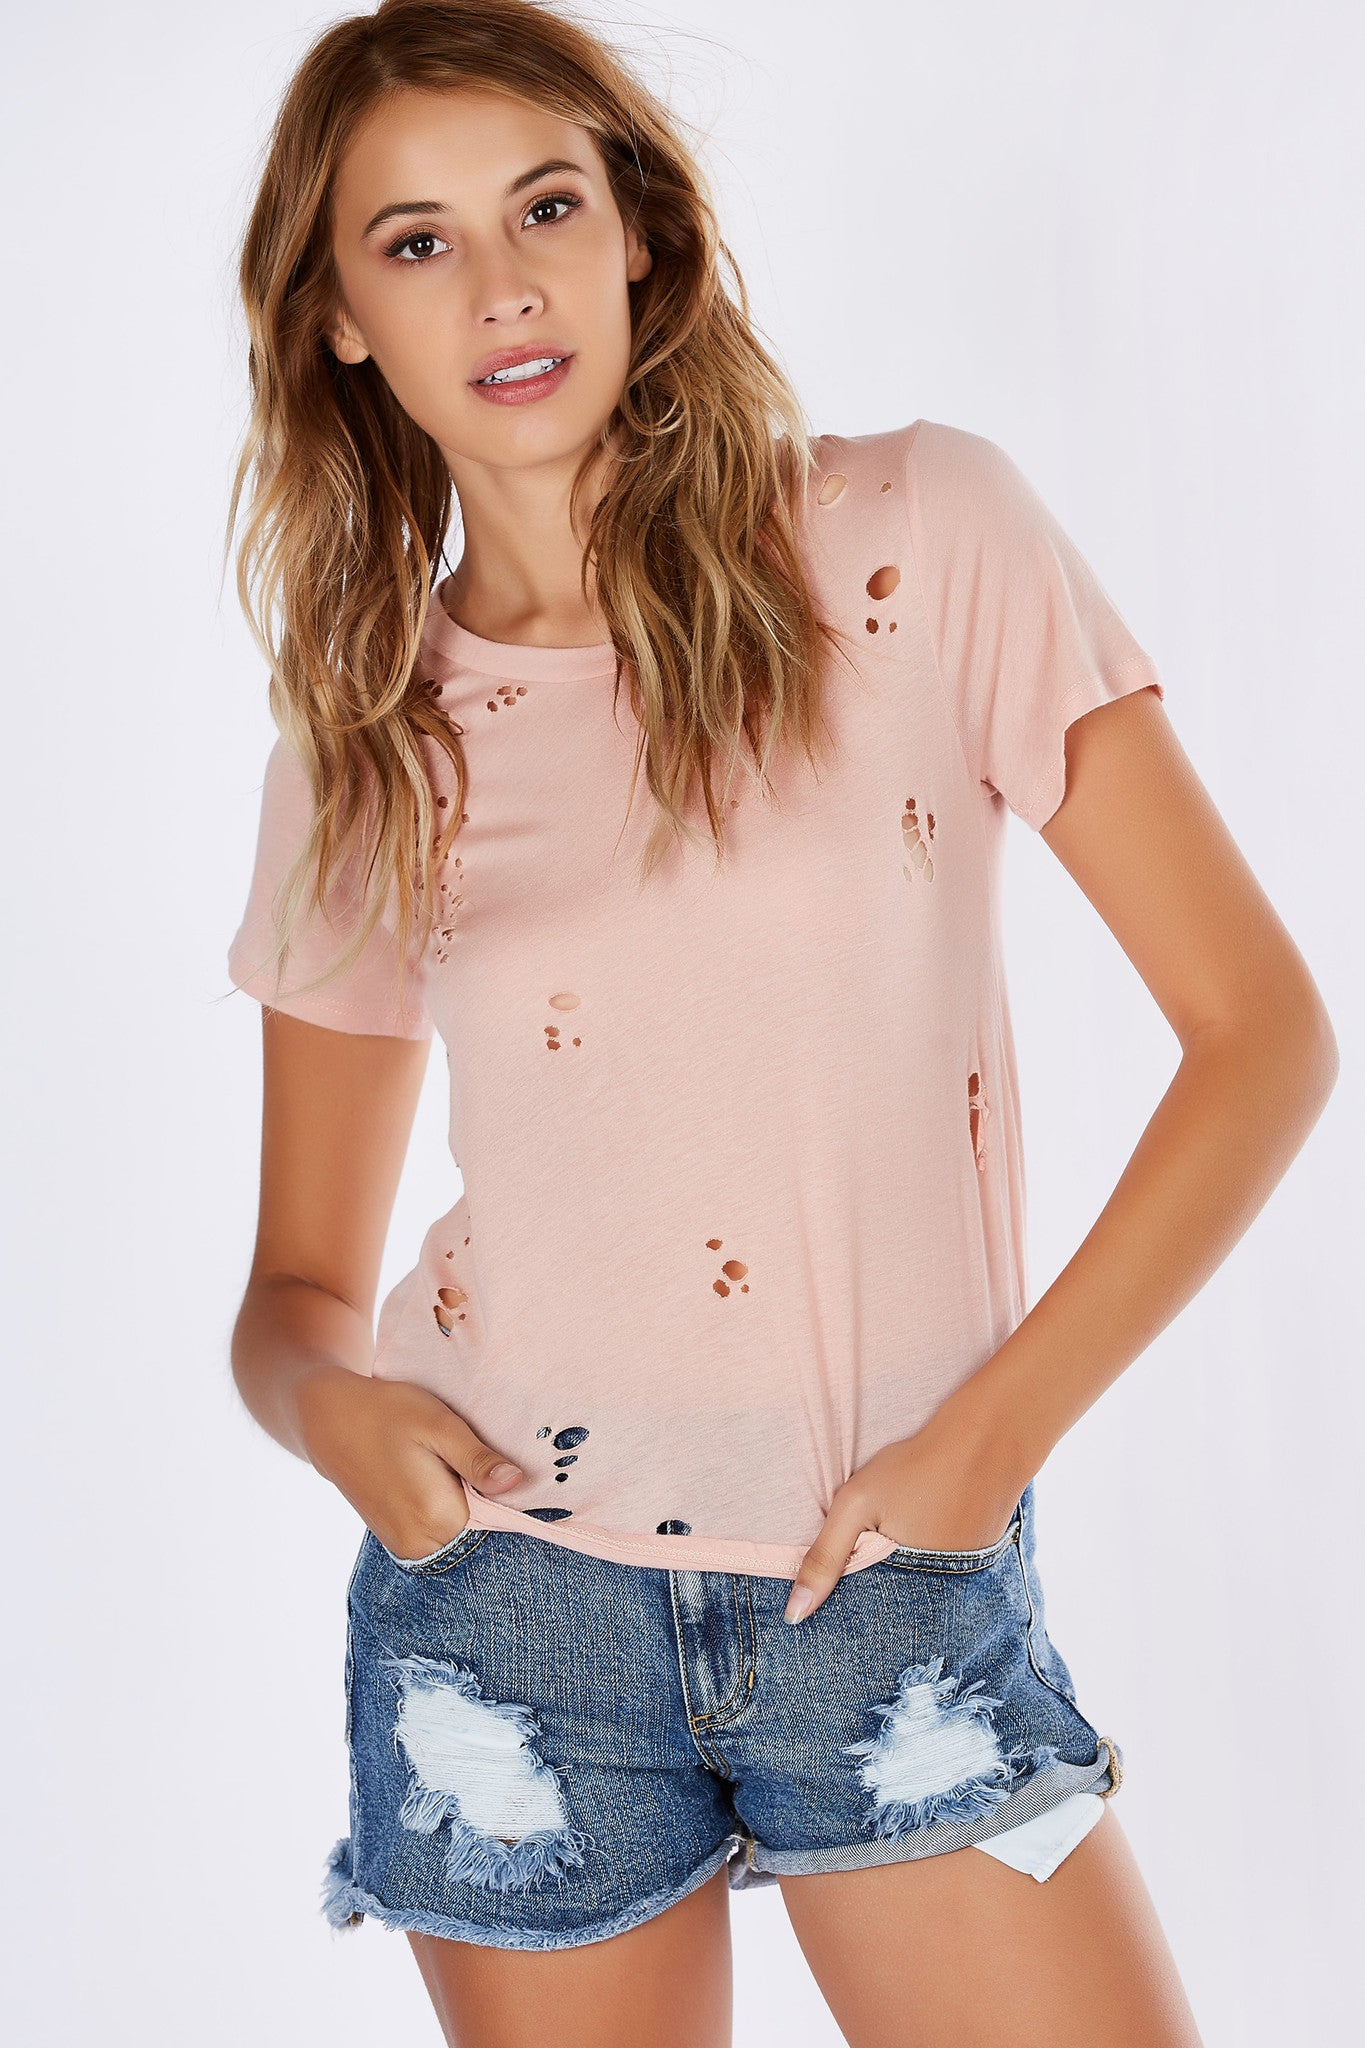 Style those lazy days with this eye-catching distressed knit tee. Sheer and edgy with a scooped out backside. Pair this with a strappy bralette and joggers.